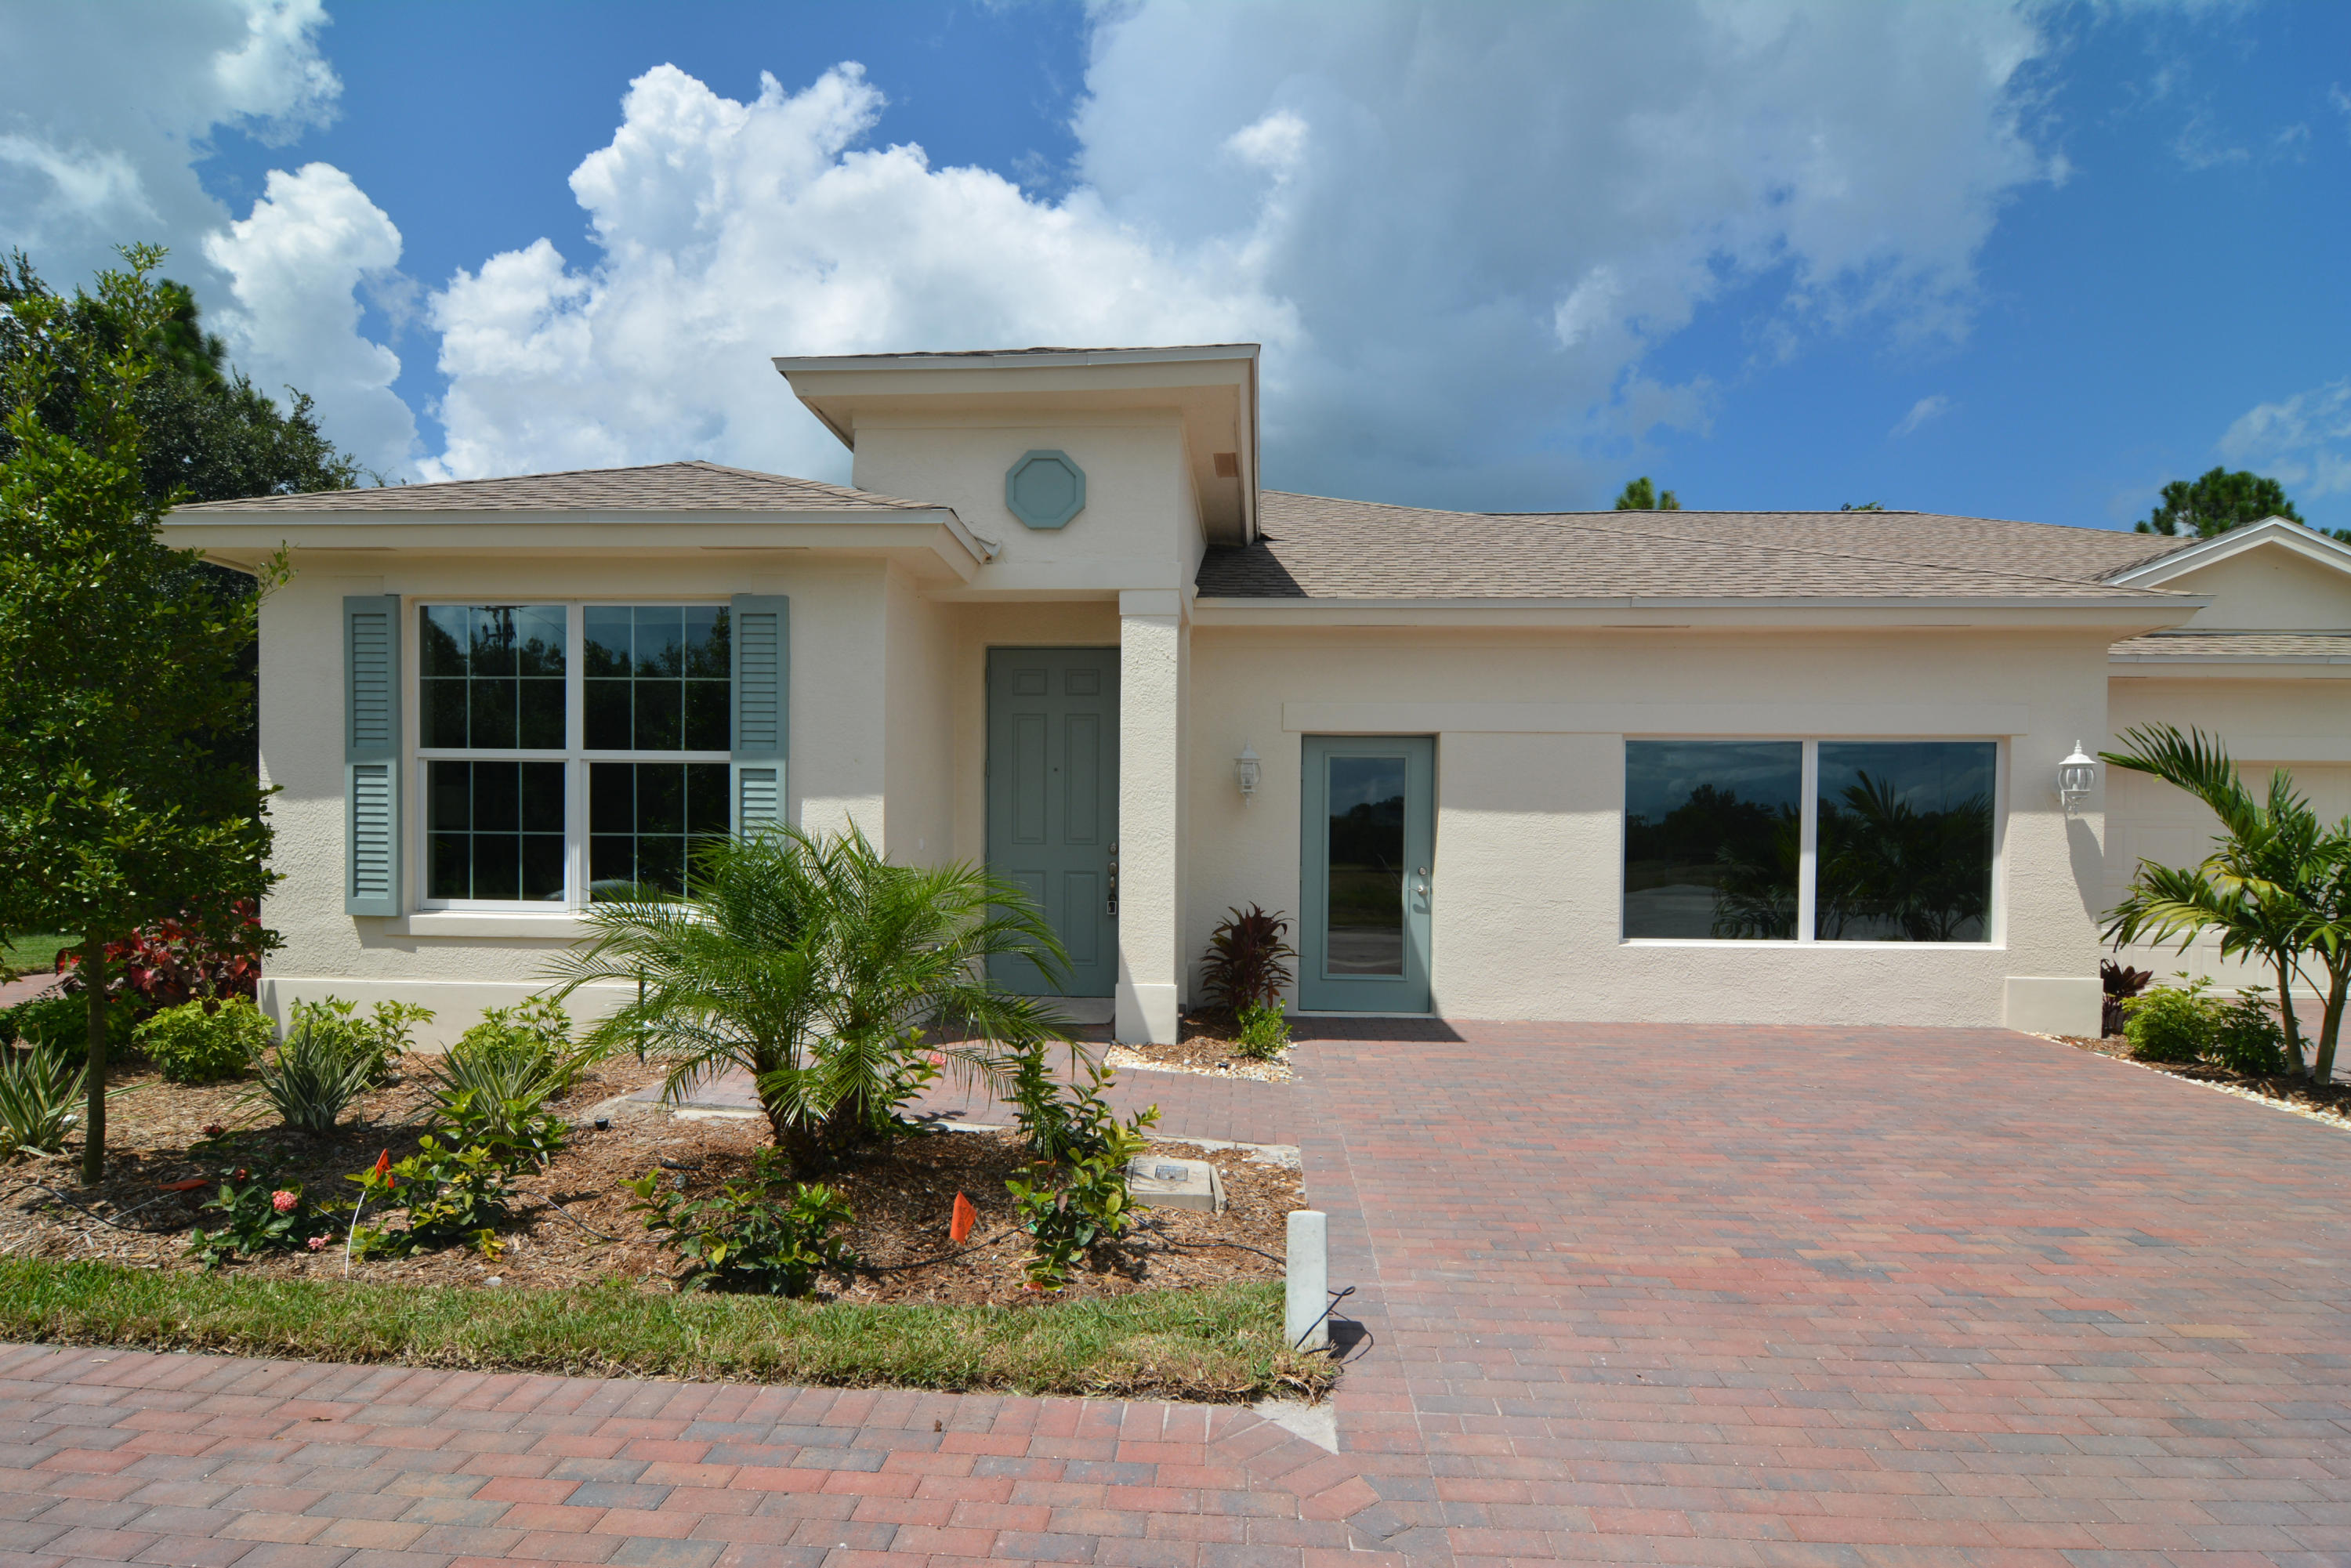 Photo of 6012 Scott Story Way, Vero Beach, FL 32967